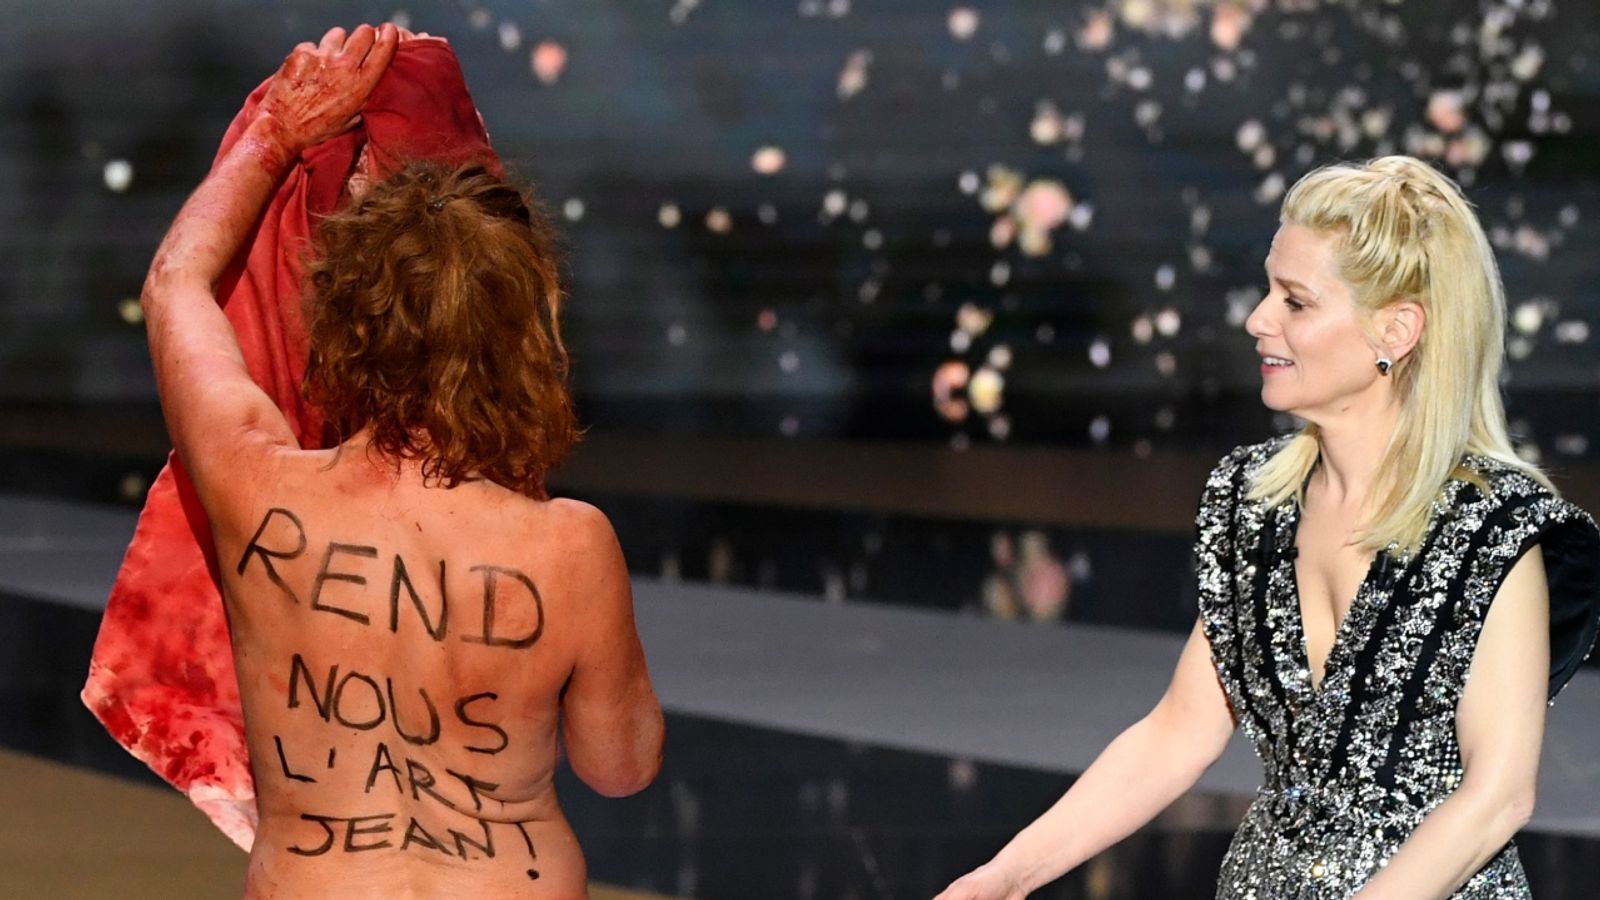 Actress Corinne Masiero protests naked at French Oscars